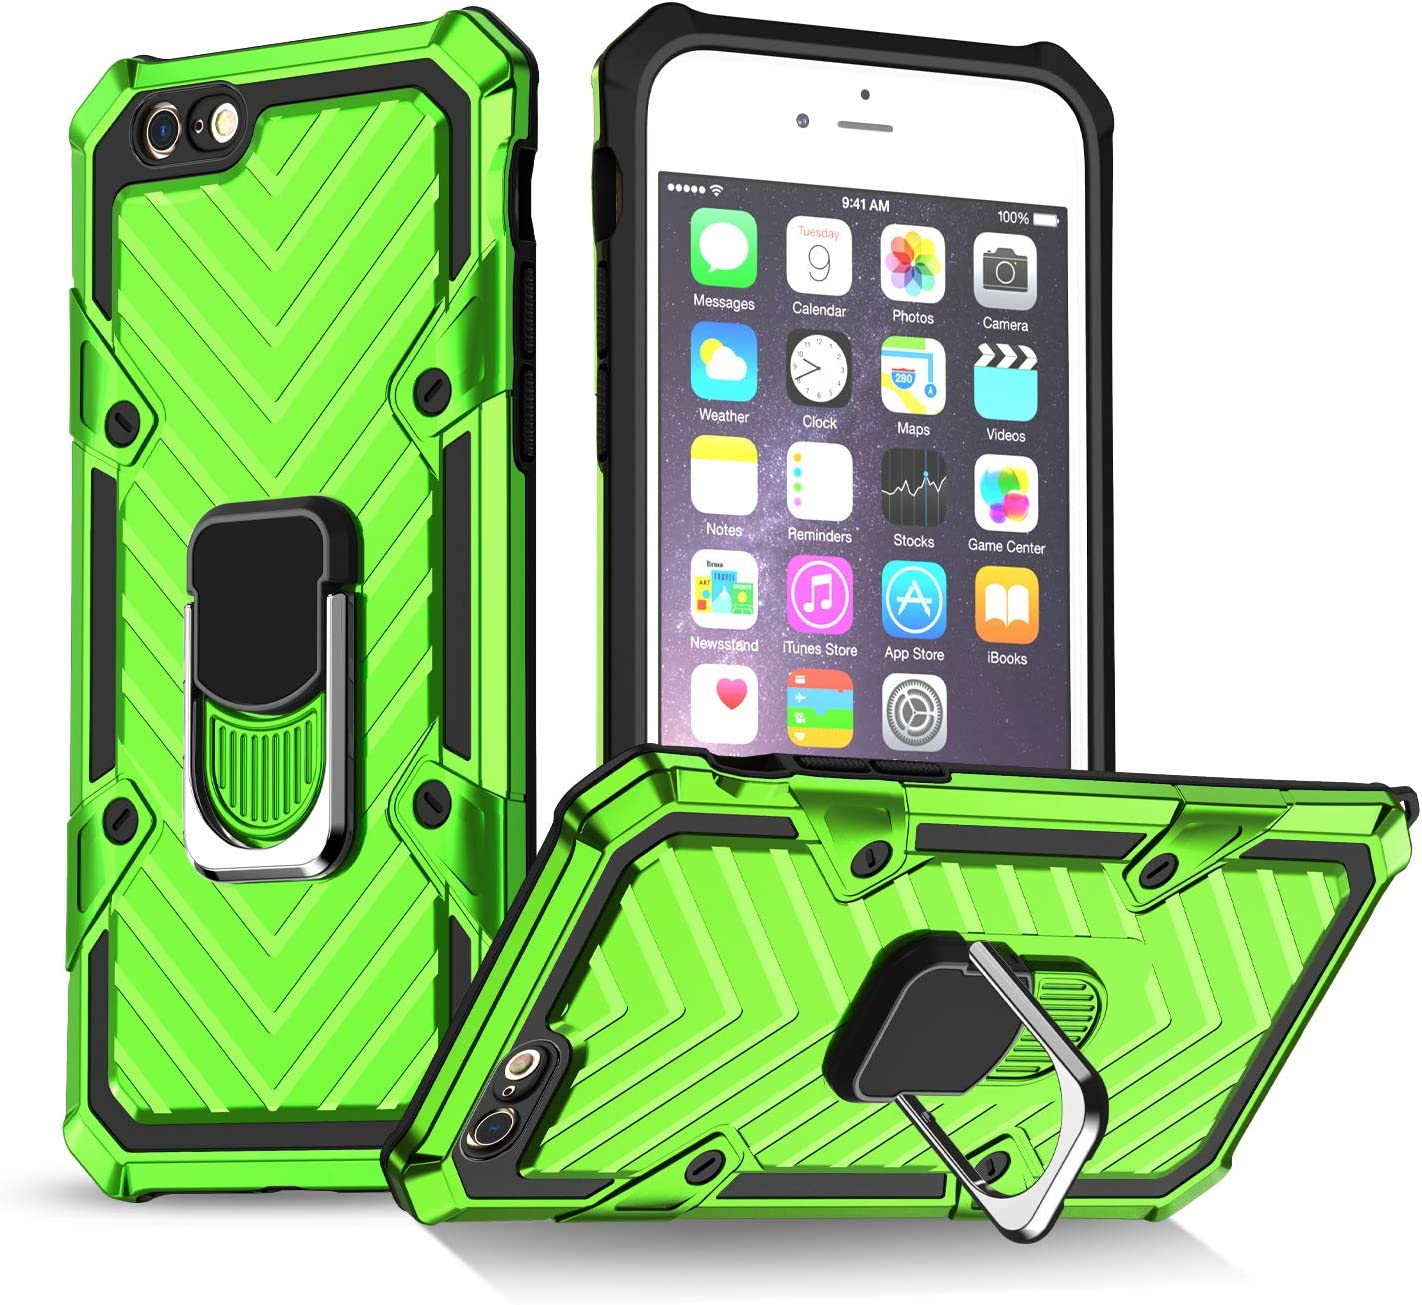 iPhone 6 Case | iPhone 6s Case | Kickstand | [ Military Grade ] 15ft. SGS Drop Tested Protective Case | Compatible for Apple iPhone 6/6S-Green (iPhone 6/6s)